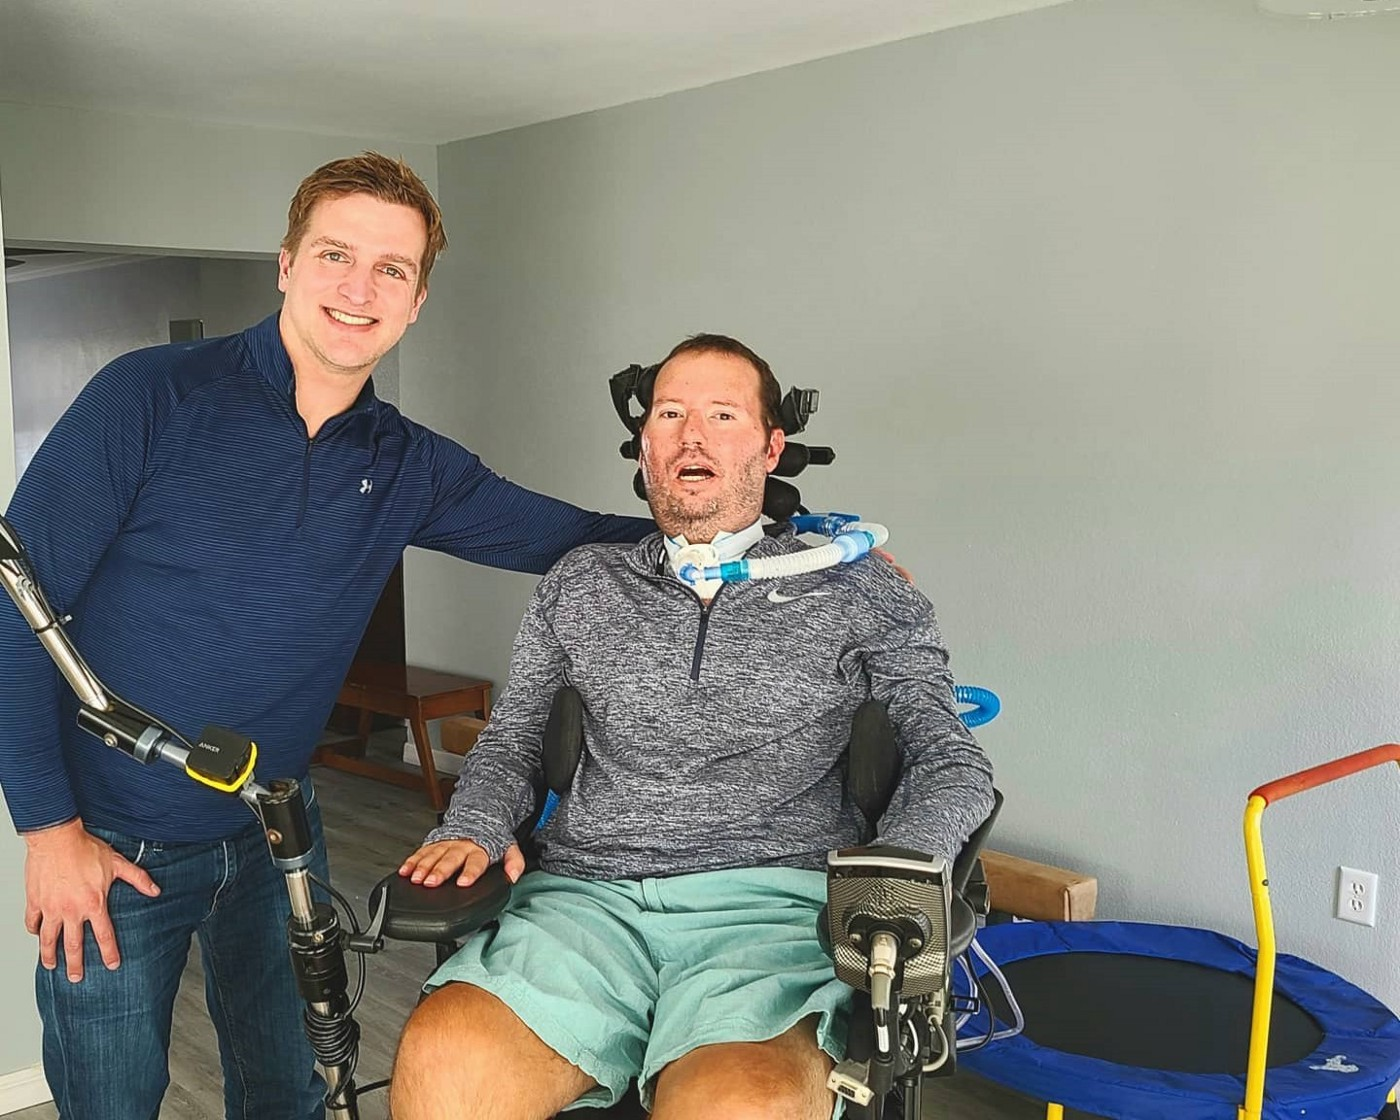 Man standing with another who is in a wheelchair.